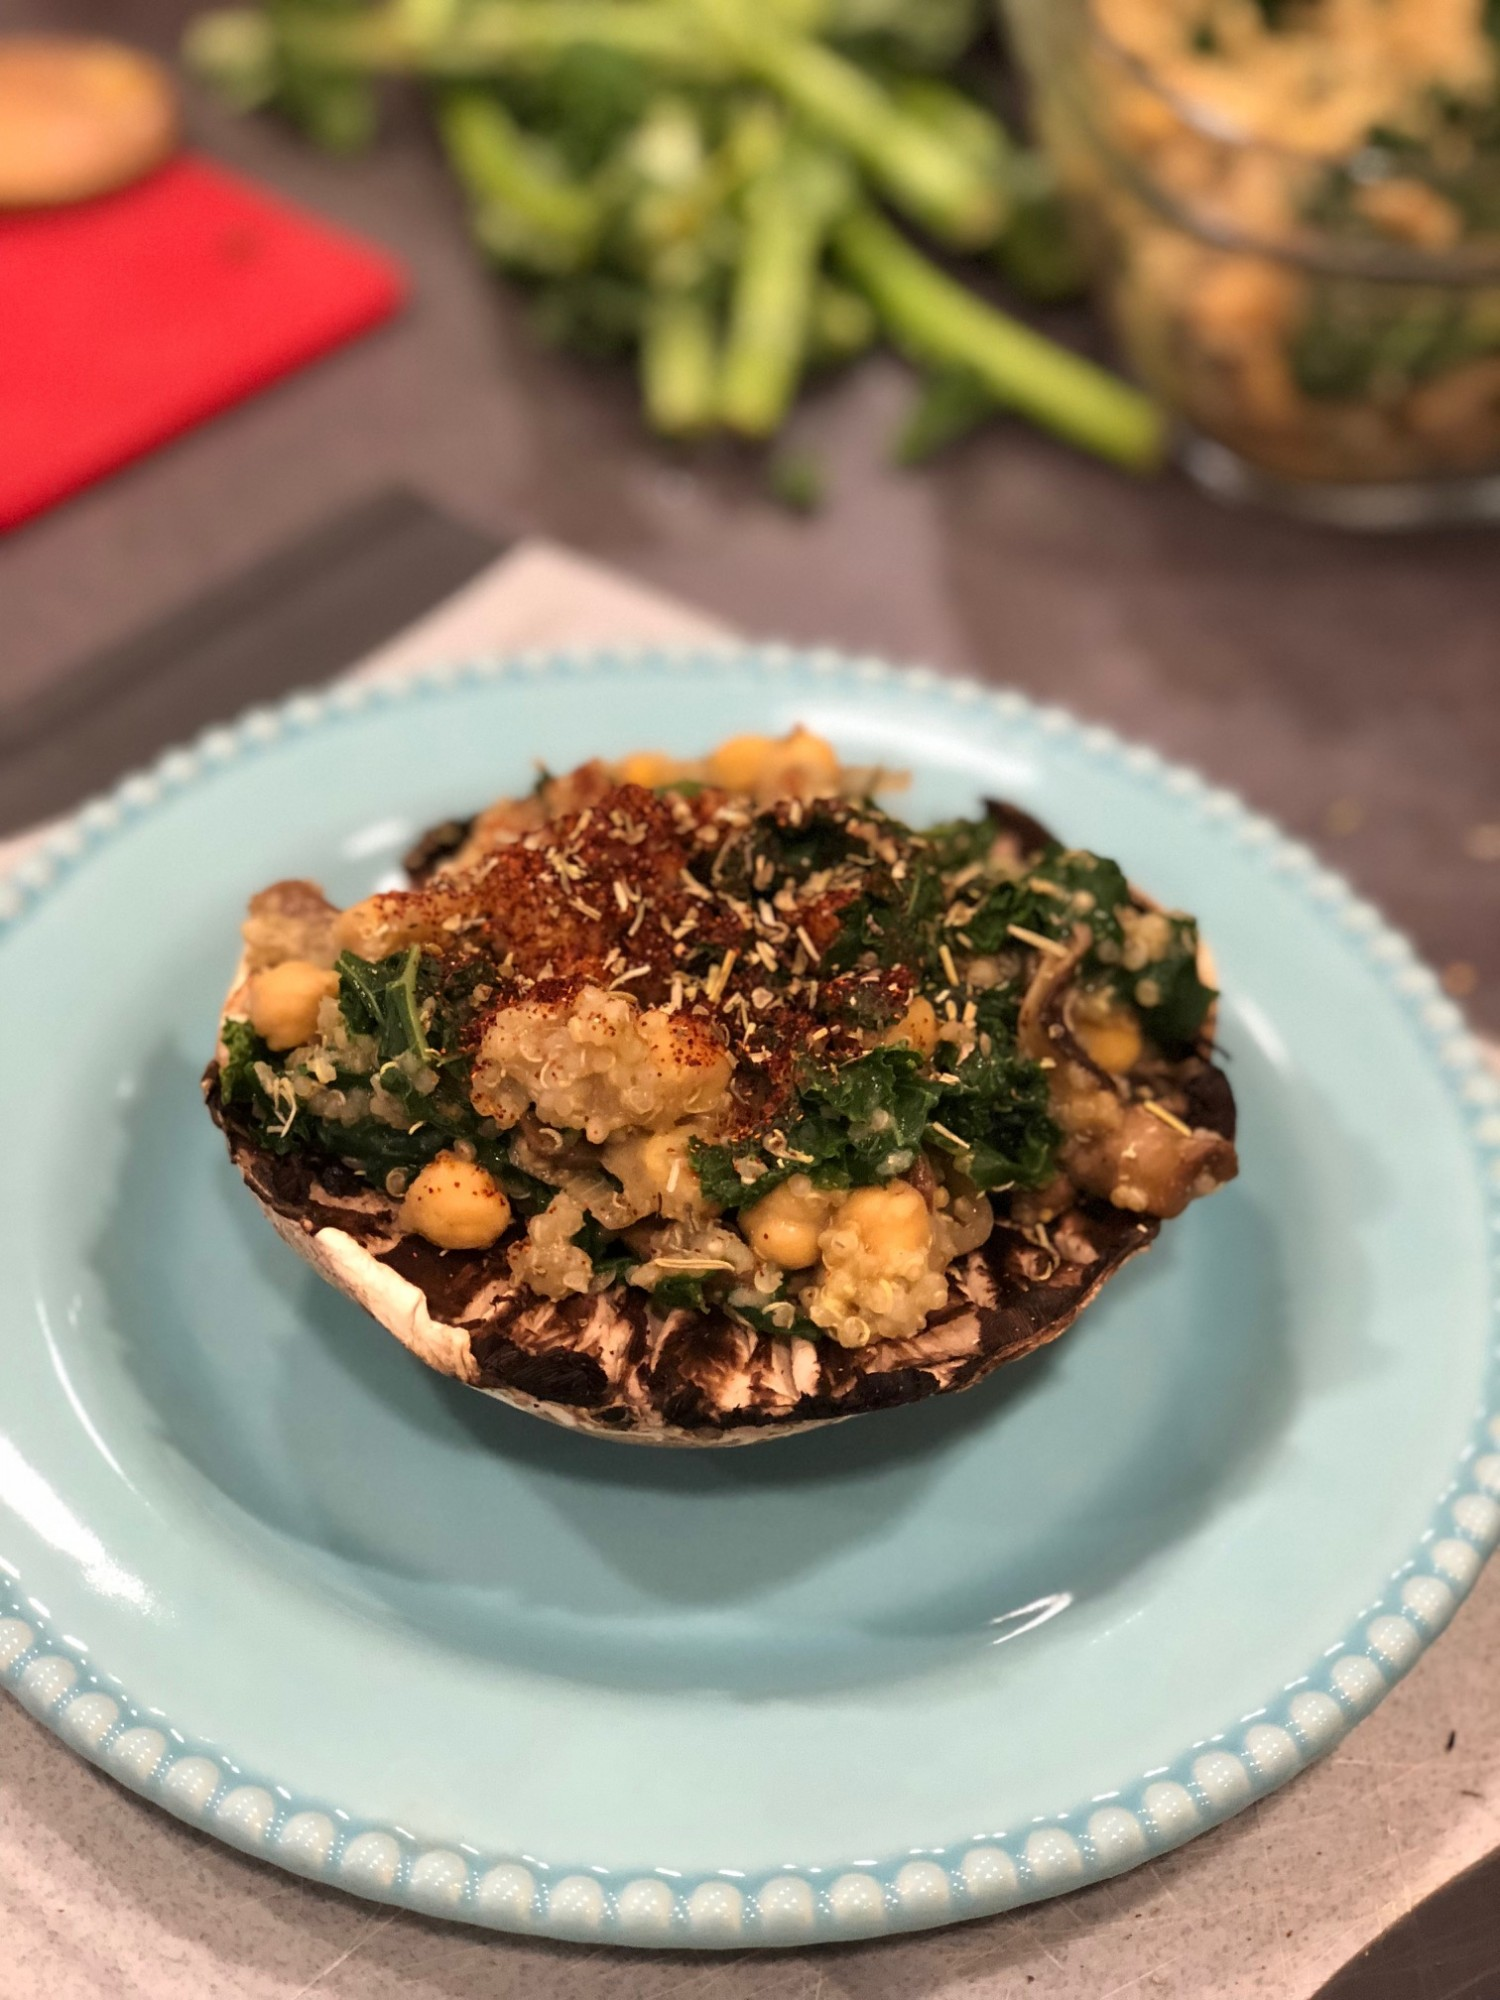 Quinoa Stuffed Portobello Mushrooms